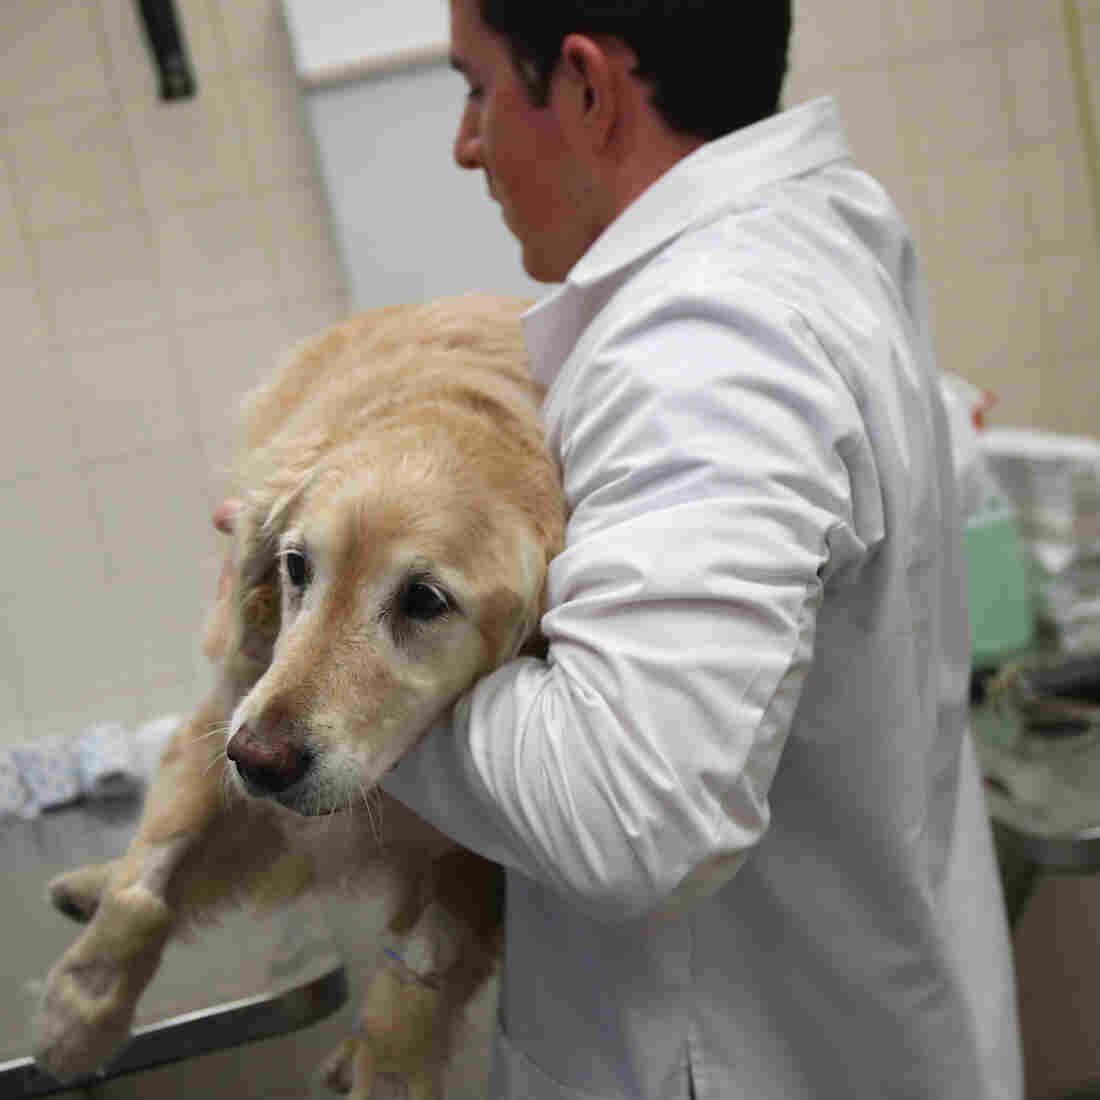 There's Not Enough Work For Veterinarians